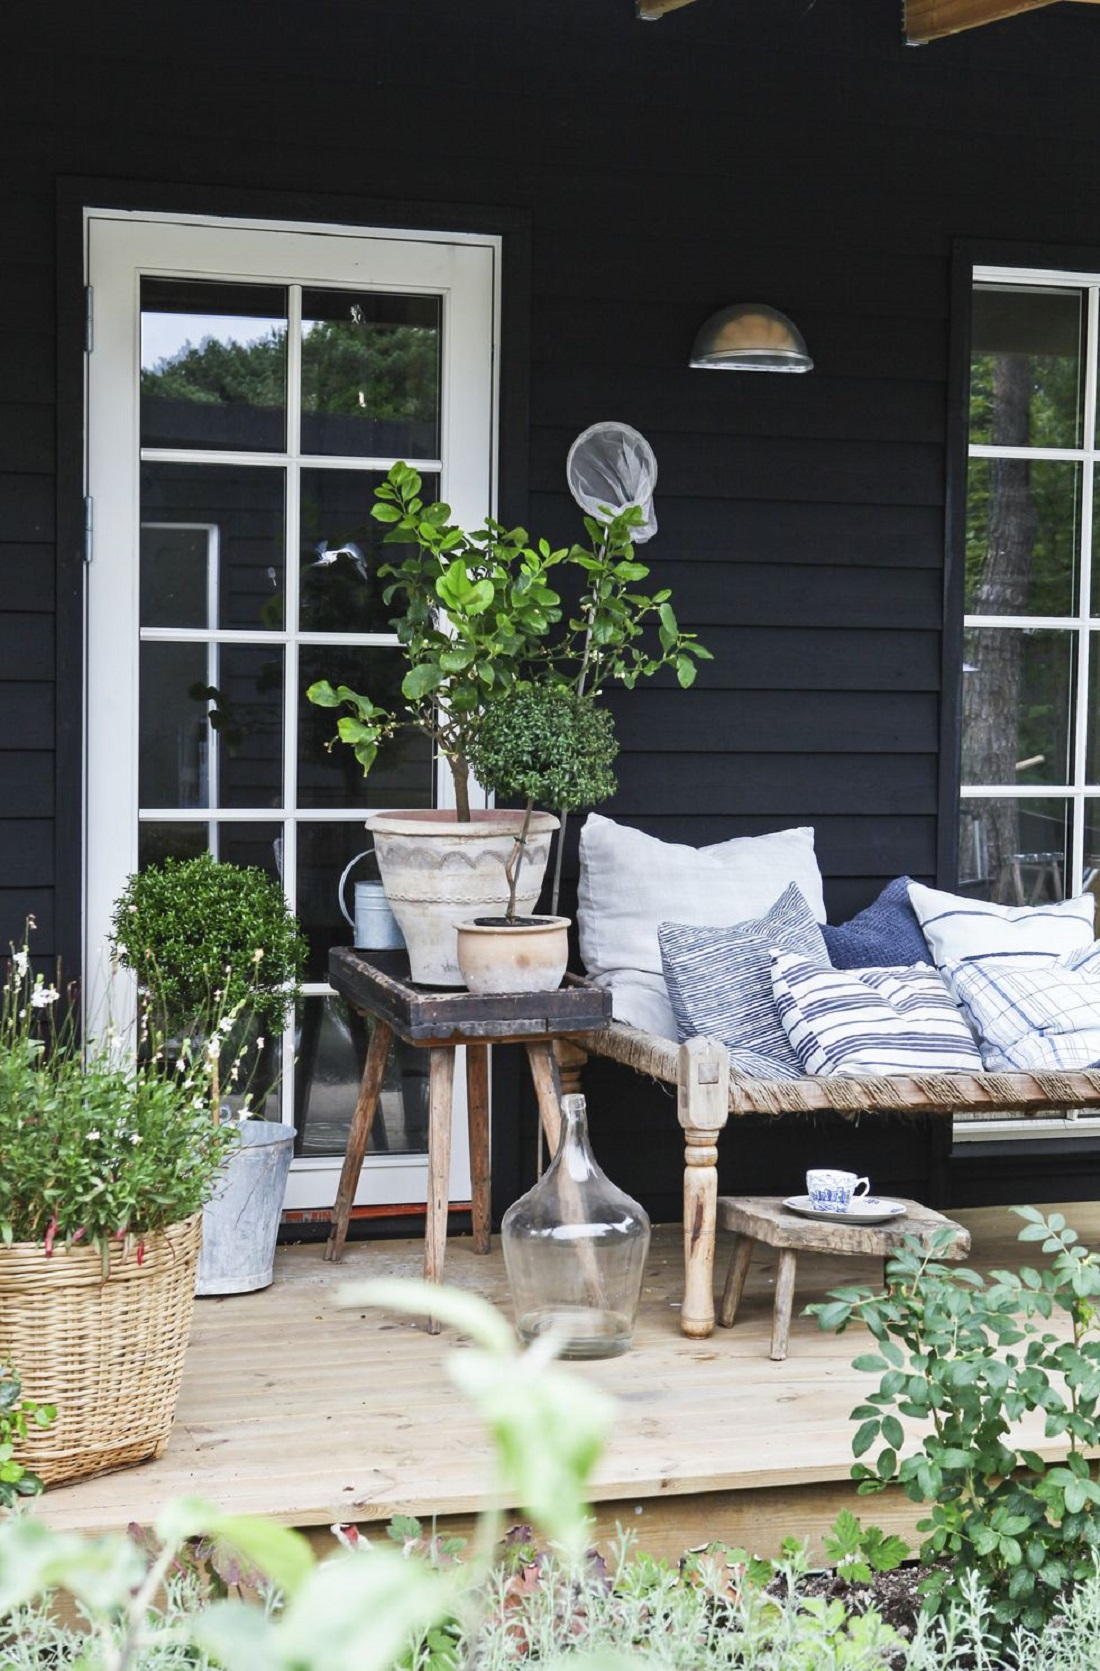 @projectfairytale: Charming Swedish Cottage